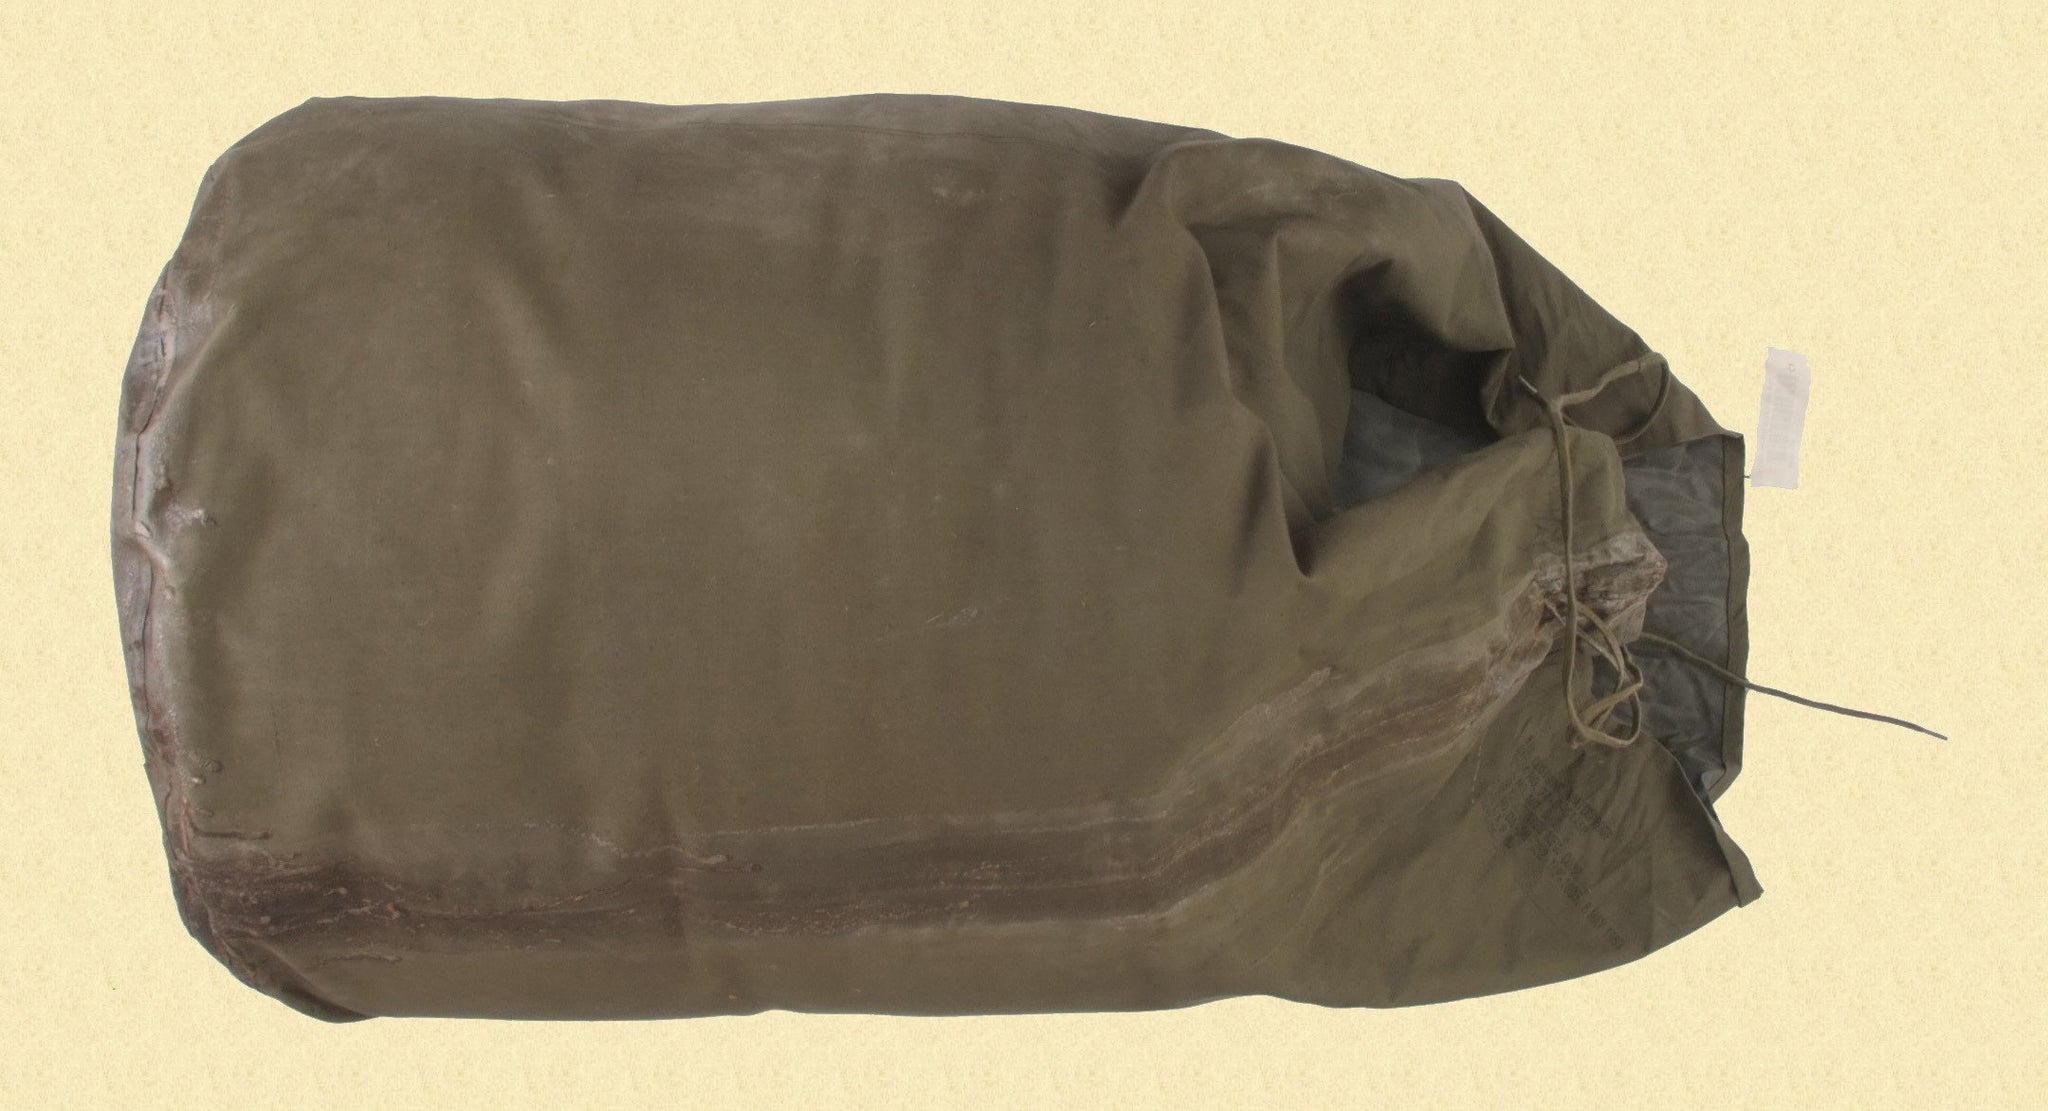 USGI COLD WEATHER SLEEPING BAG